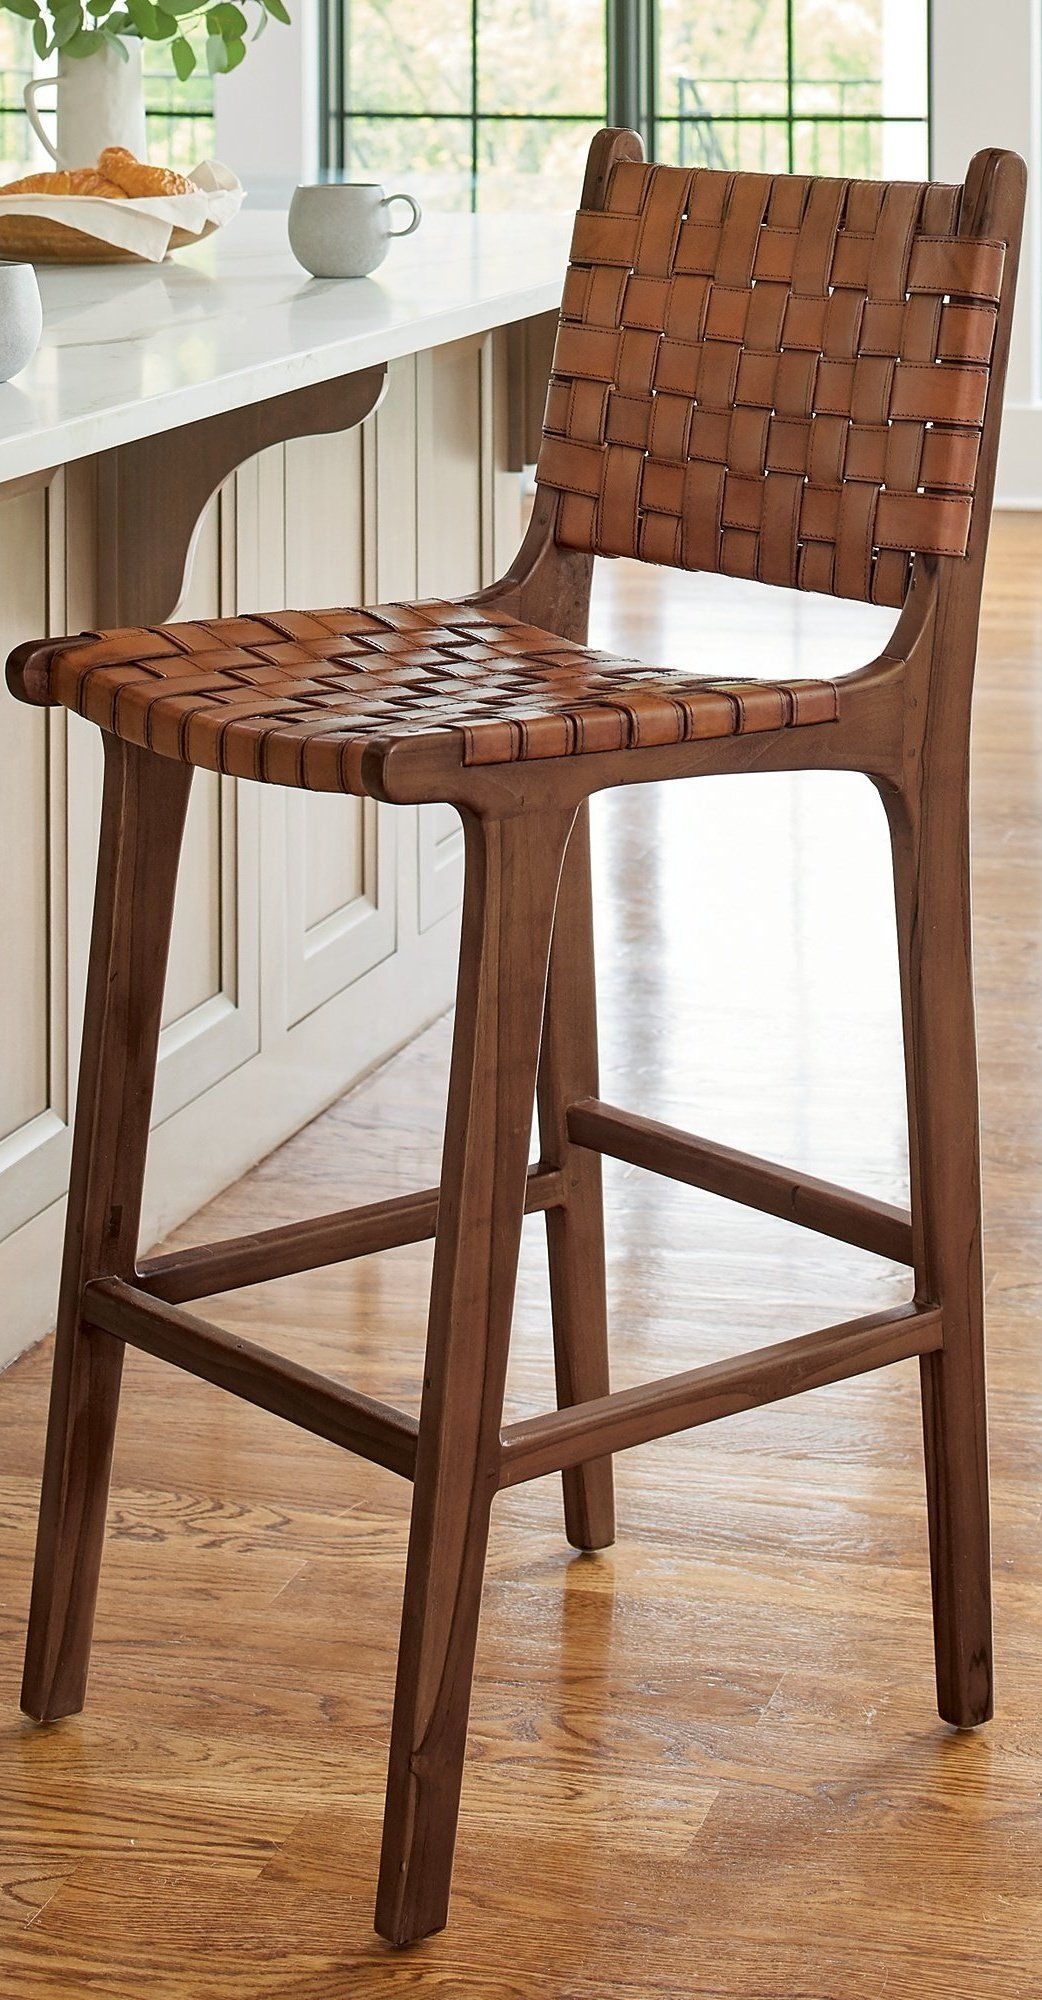 Augusto Low Back Bar Counter Stool Grandin Road Counter Stools Stool Kitchen Stools